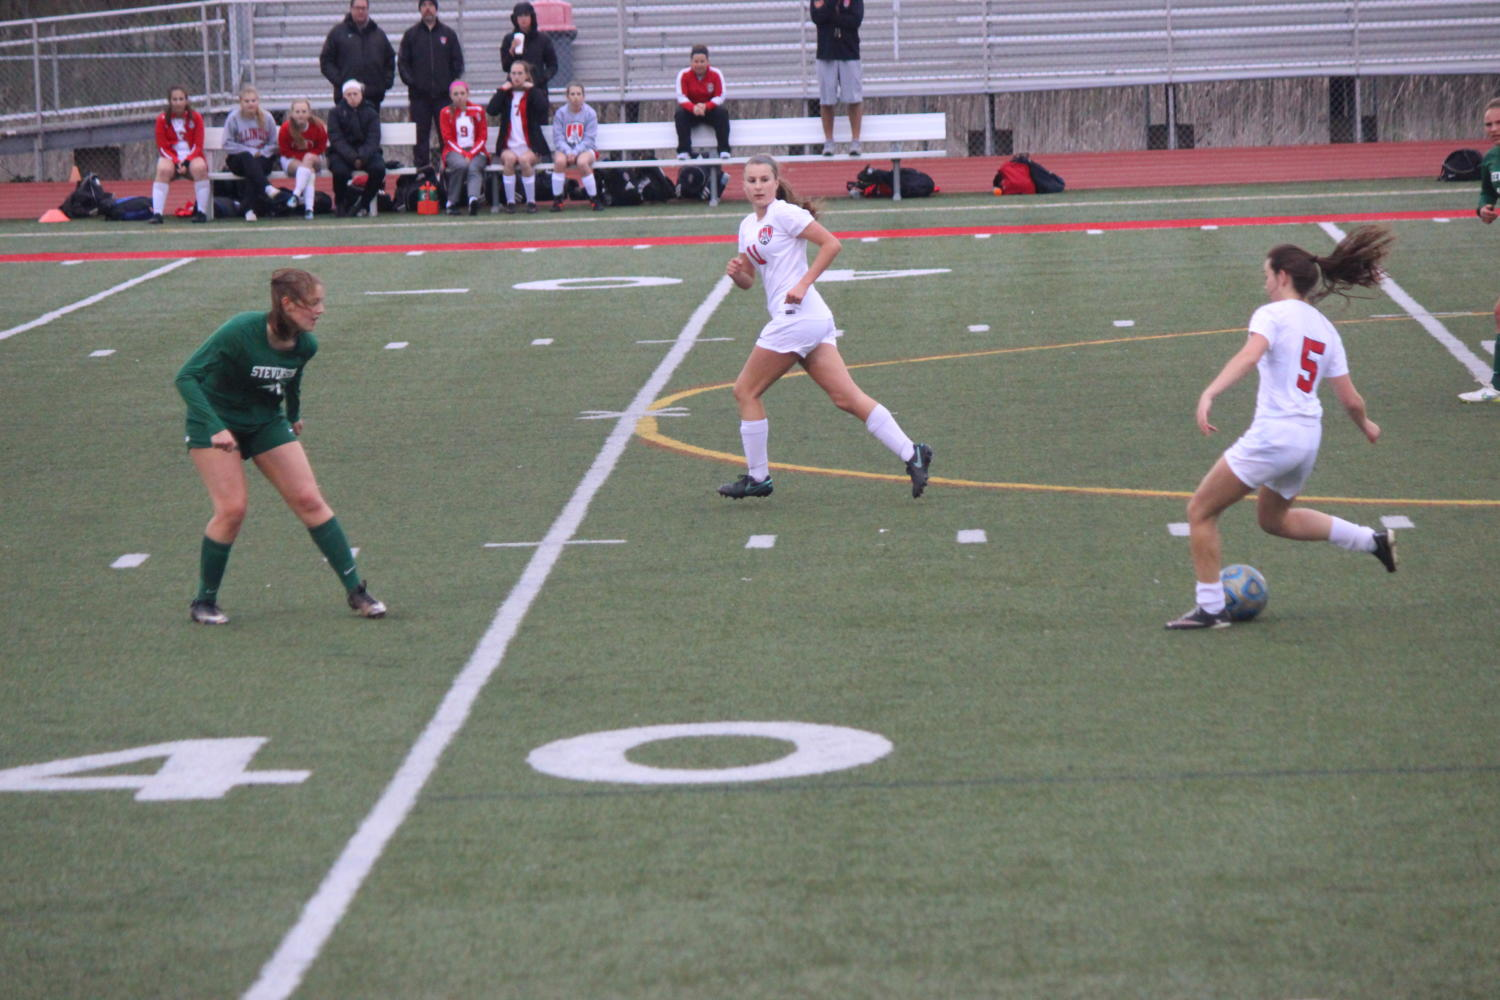 Thread the Needle: Senior Midfielder Emily Ollendick looks to pass ahead of the Stevenson defender to Junior Forward Myah Strokosch in order to get a scoring chance.